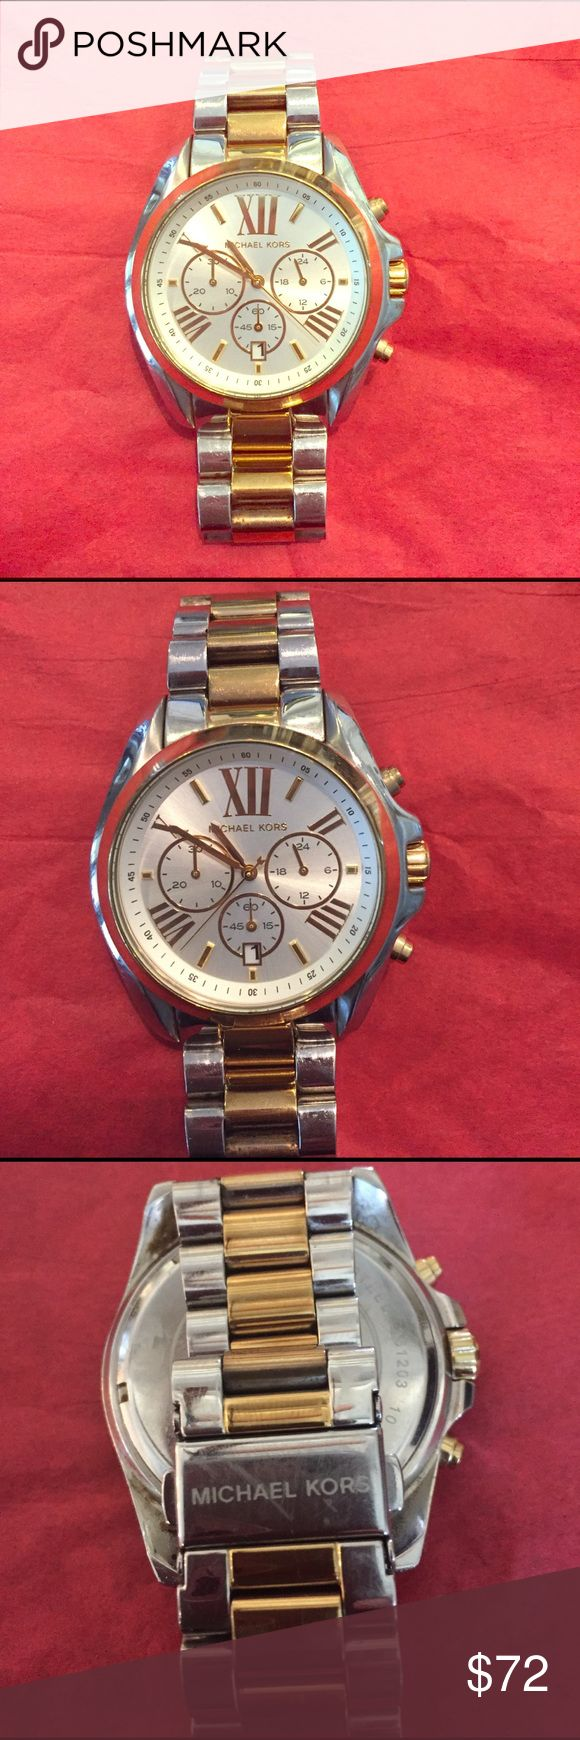 Michale Kors Watch Preowned Michael Kors Watch 44mm. Good condition. Band does have signs of wear. Clasp  is scratched. No scratches on Watch bezel. Gold tone in good shape on bezel. My wrist measures 6.1 this Watch fits me snug. Nothing wrong with the Watch I have 3 gold watches and no longer need. New battery, works fine. Thanks for looking and welcome your offer.  MICHAEL Michael Kors Accessories Watches